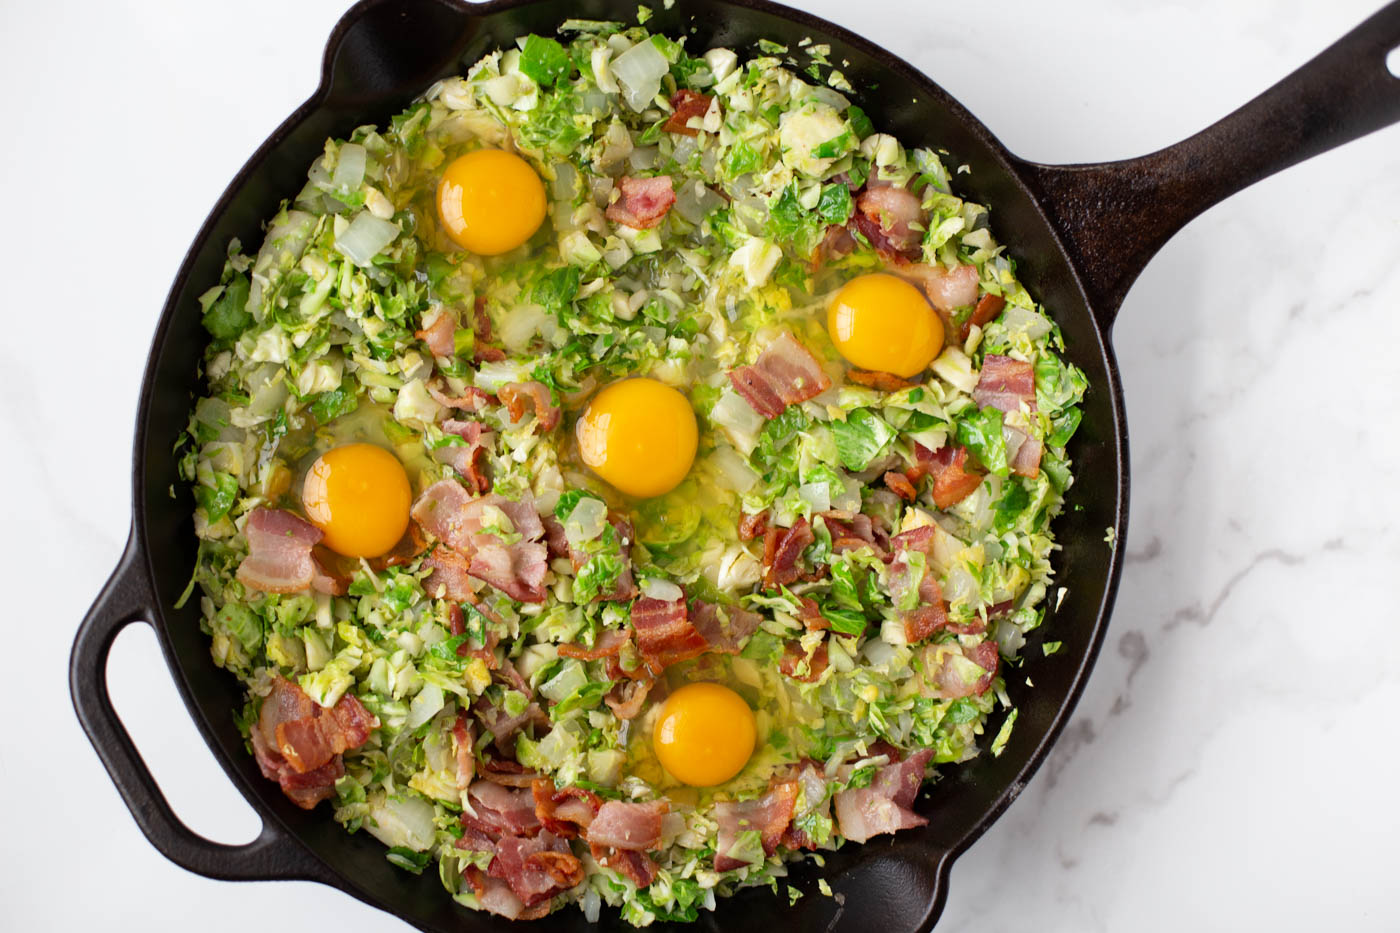 Shredded brussels sprouts, cooked bacon, and raw eggs in cast iron skillet